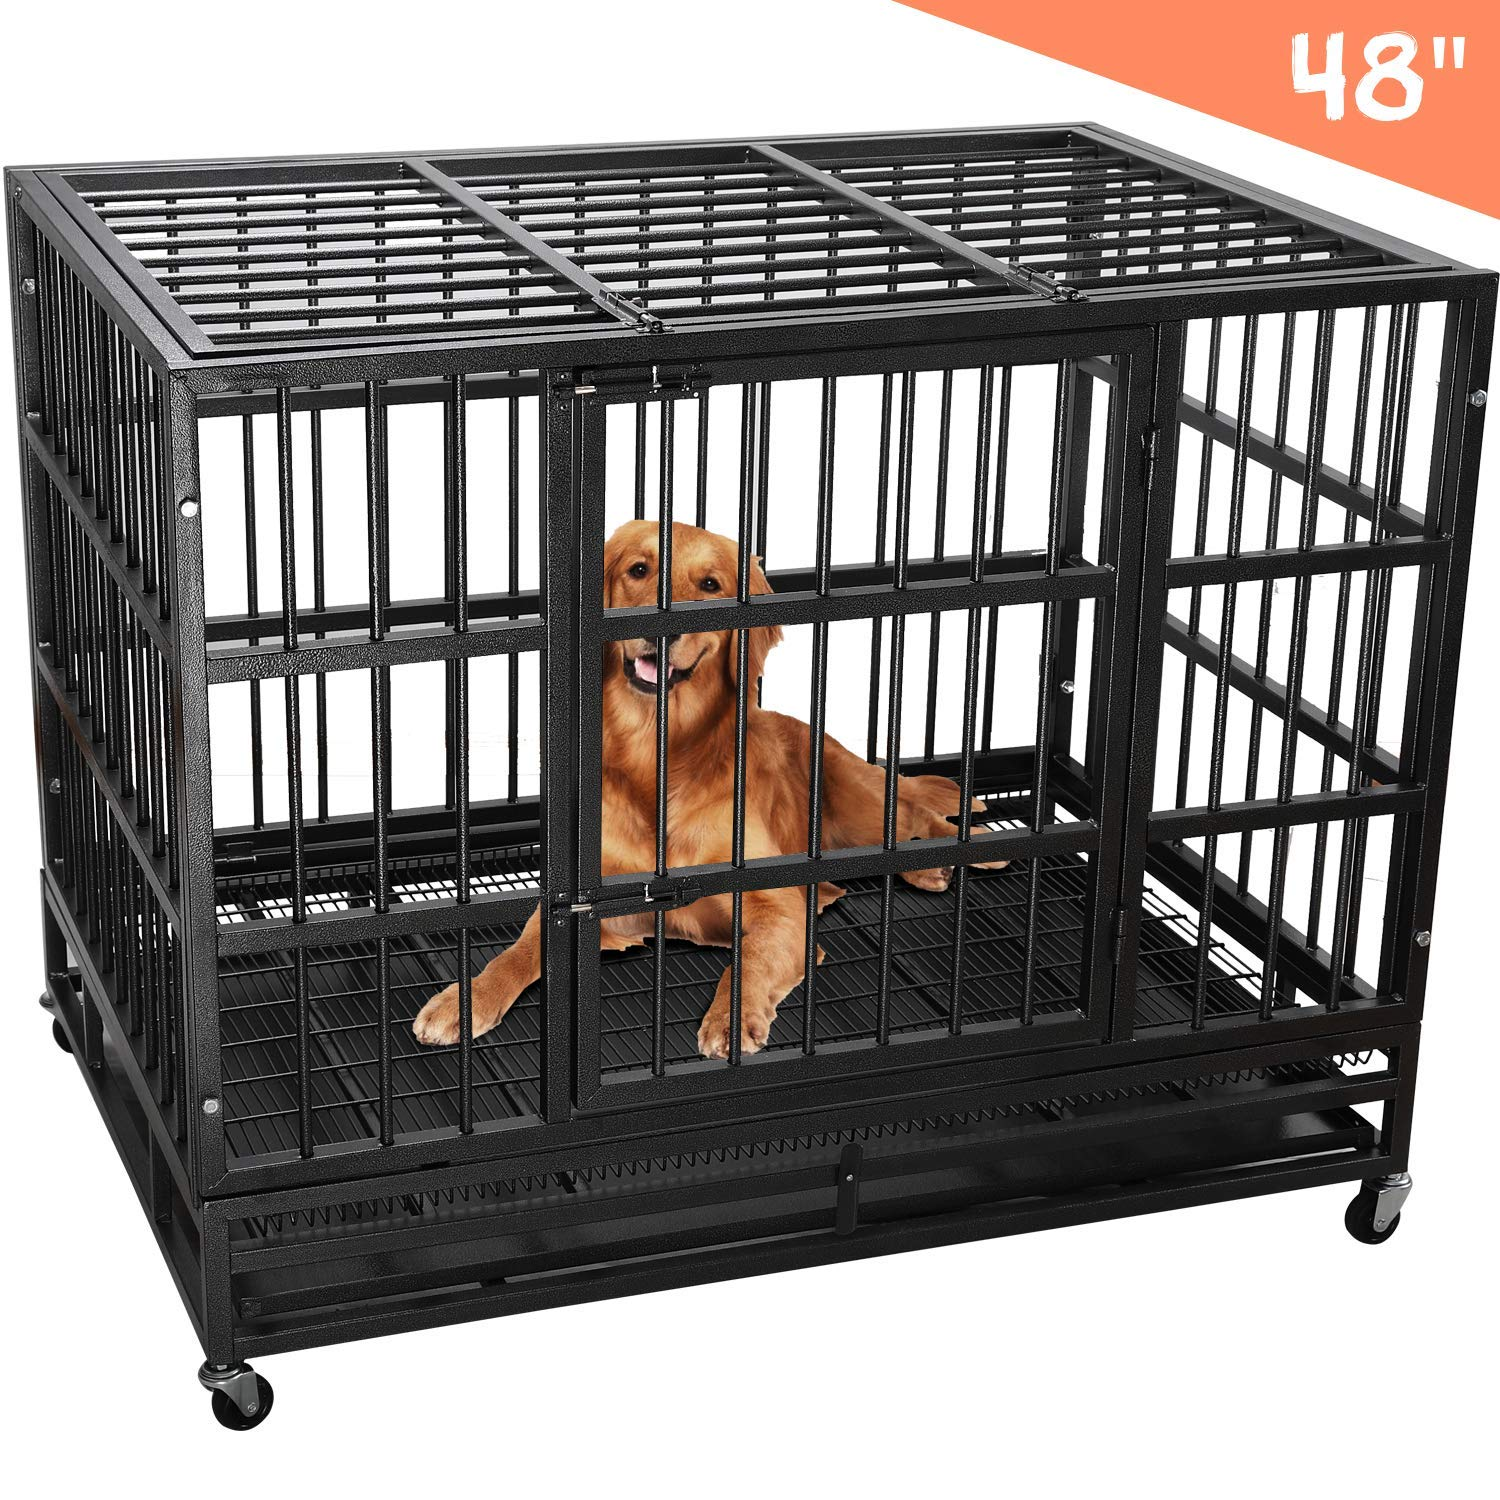 Heavy Duty Dog Cage Crate, Pet Kennel Strong Metal for Training Large Dog, Easy to Assemble, with Two Prevent Escape Lock, Lockable Wheels, Removable Tray for Indoor Outdoor(42in 48in) (48in, Black) by Royaledirect